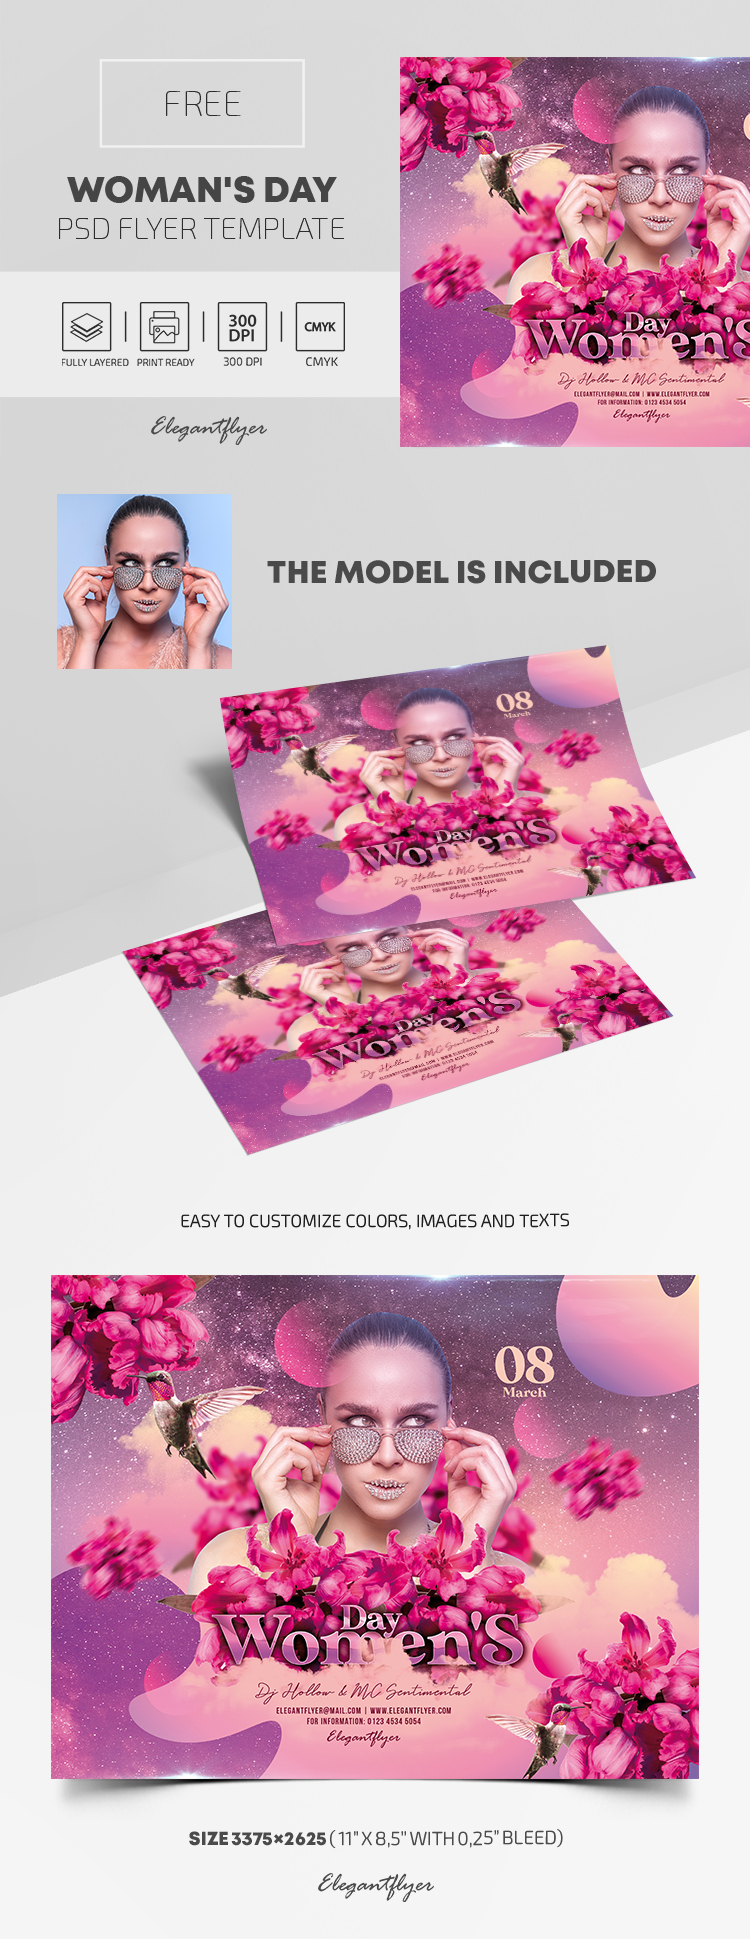 Woman's Day – Free PSD Flyer Template